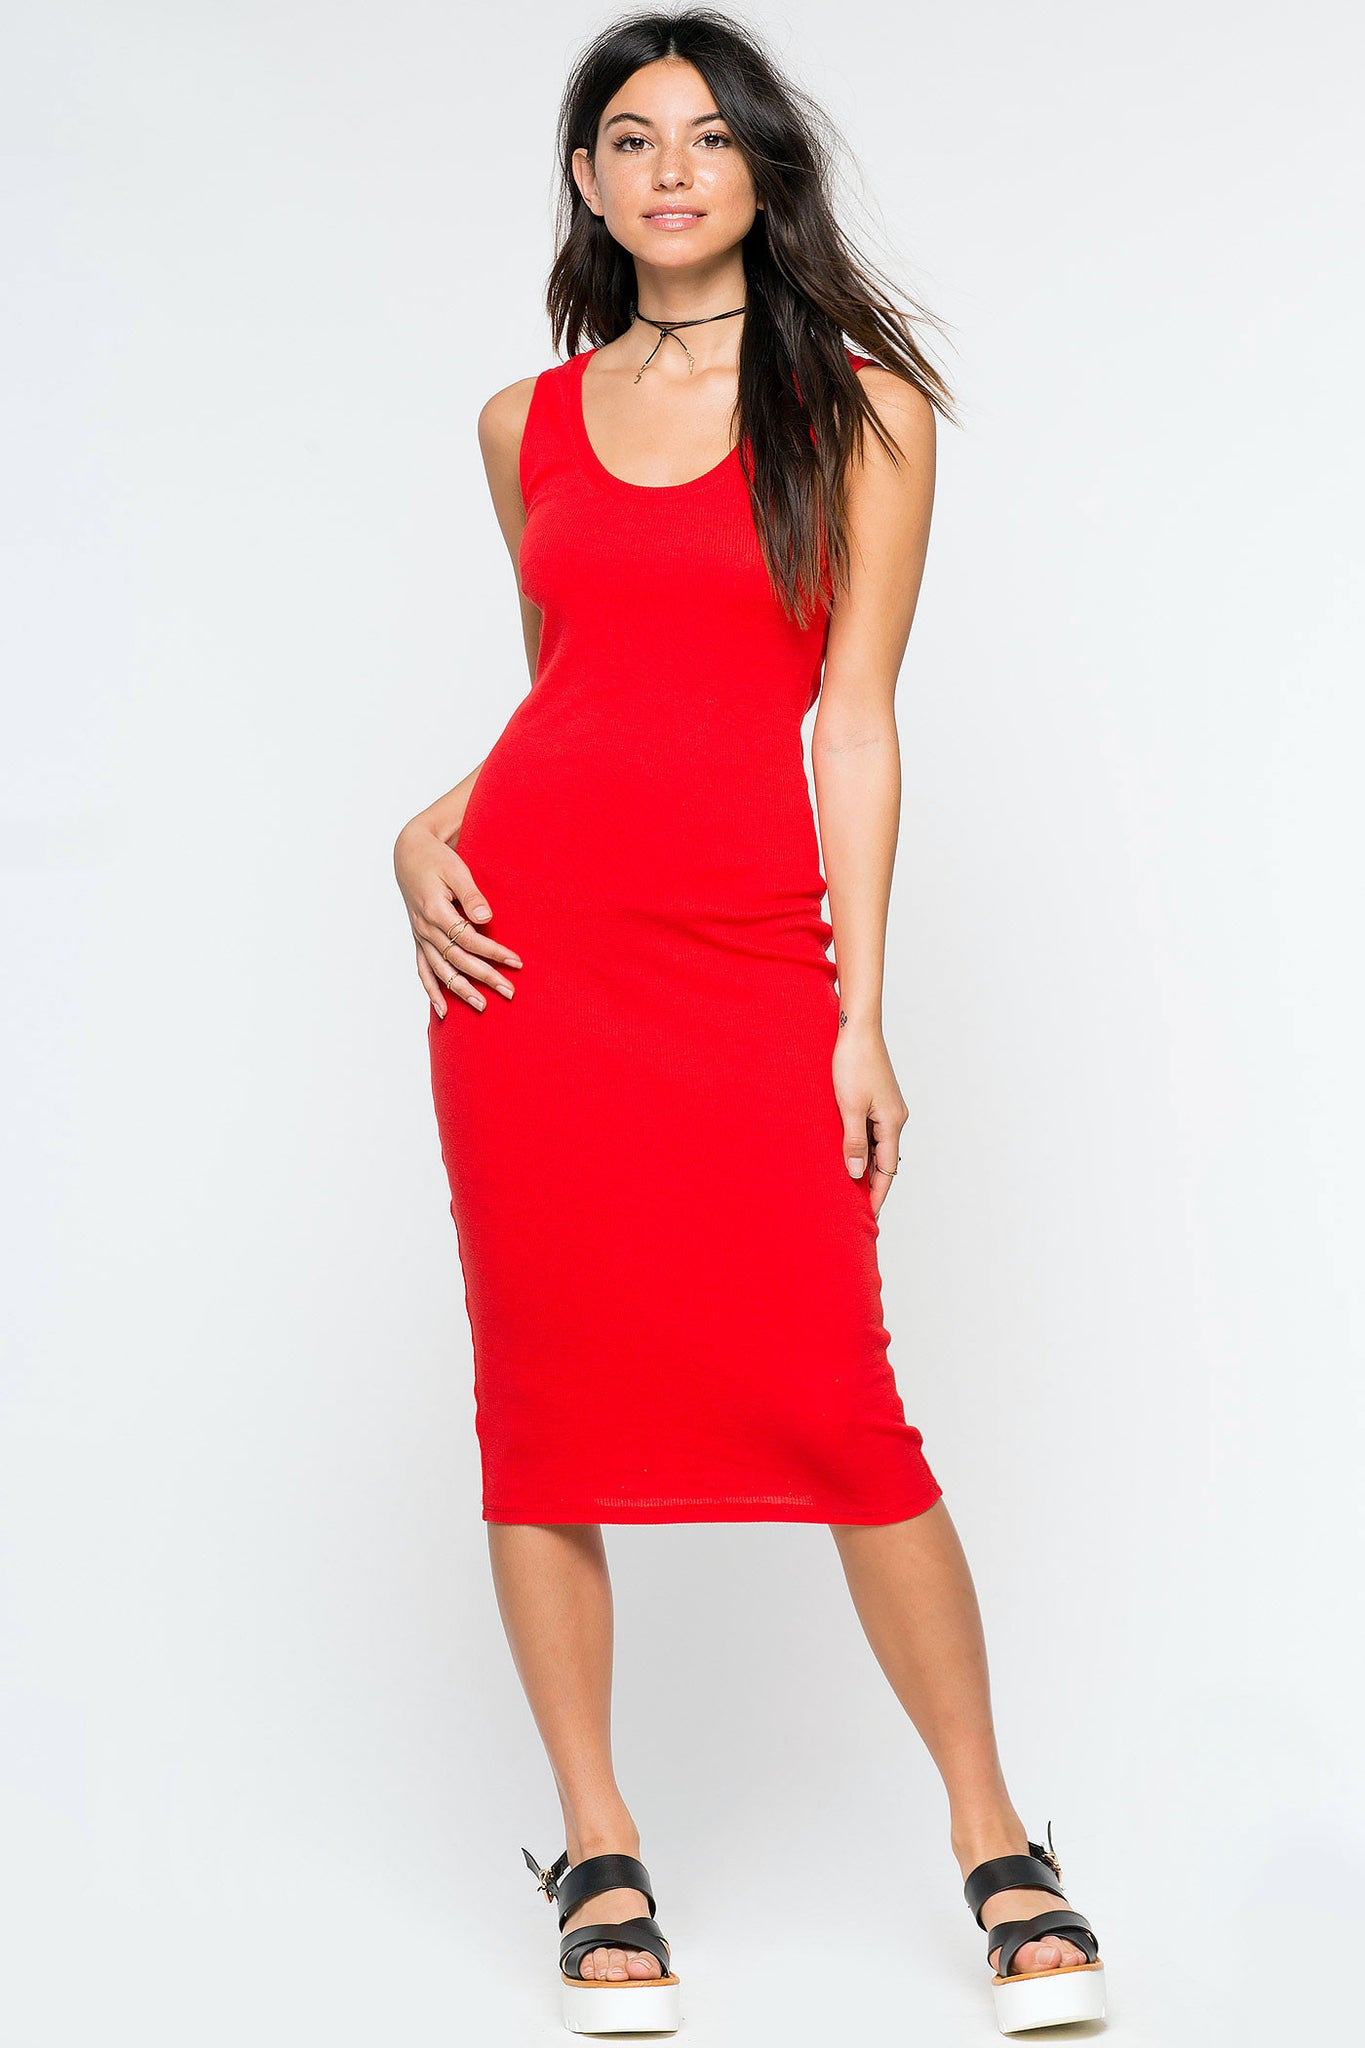 Women's sleeveless ribbed tank dress. Casual fitted bodycon midi jersey dress in red.